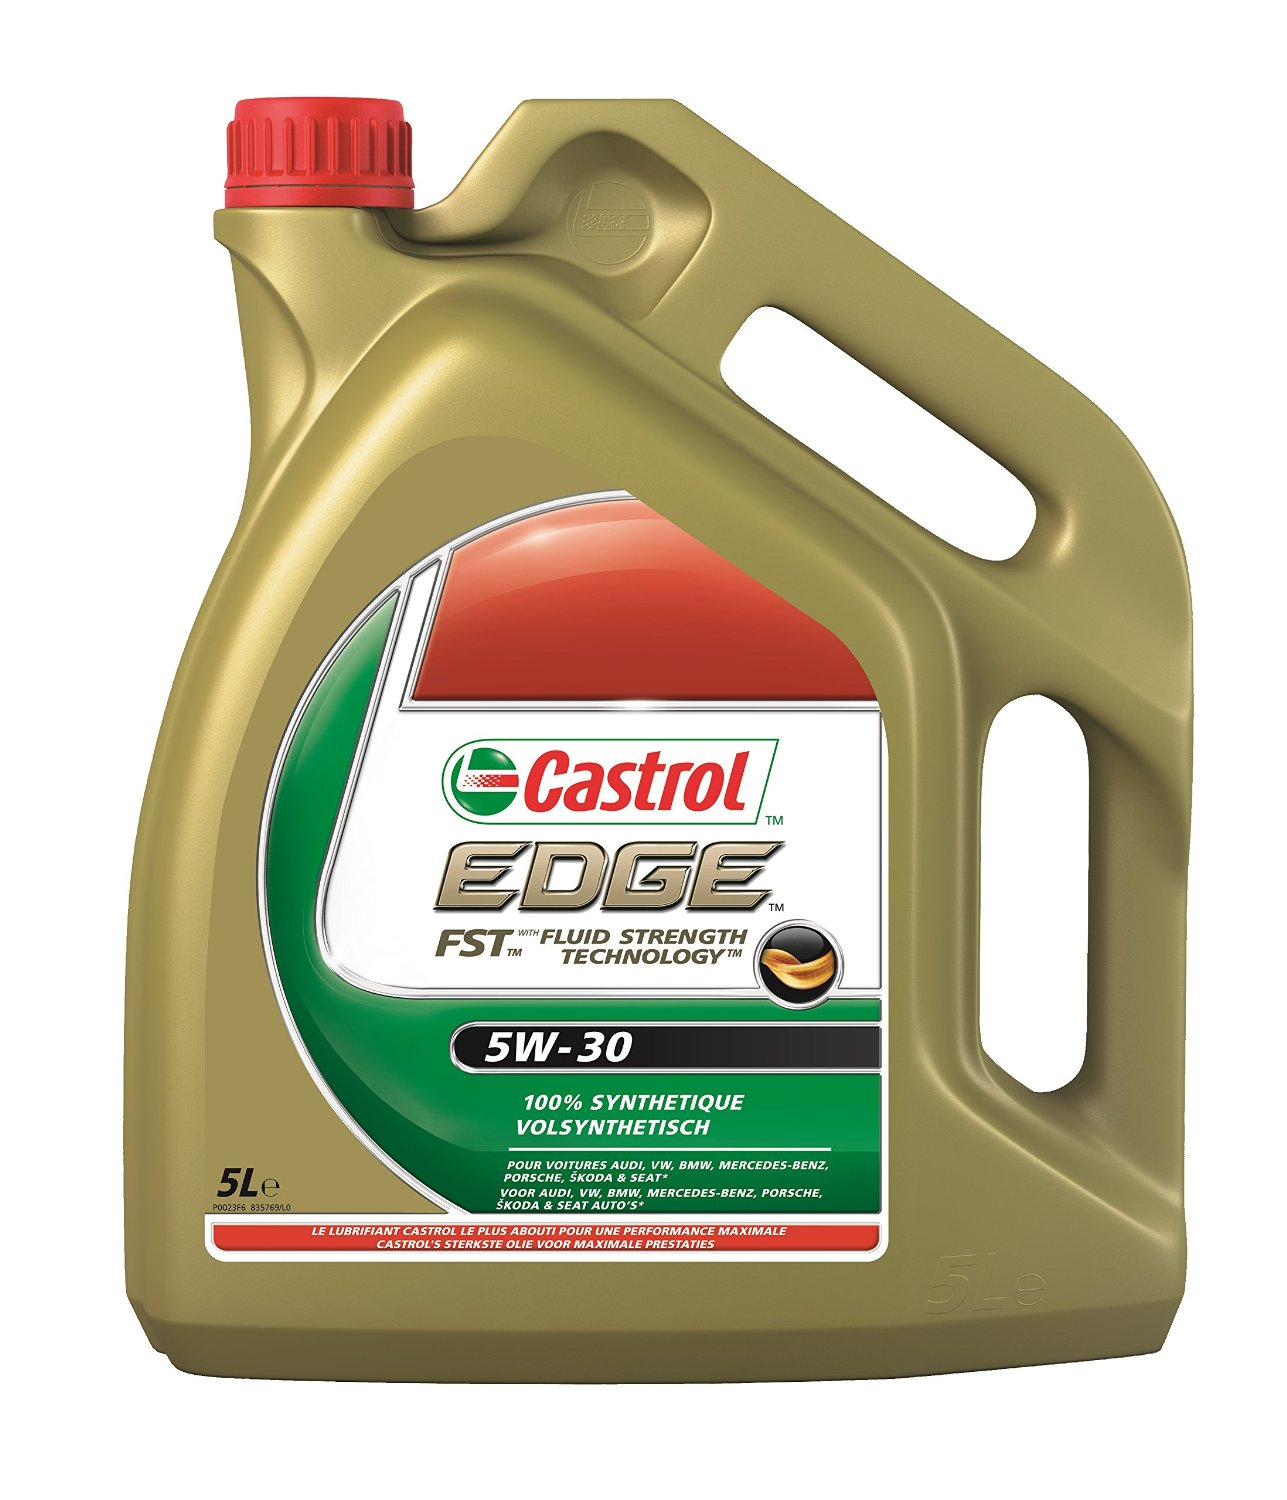 castrol engine oil edge 5w30 long life 5 litres 14d79b ebay. Black Bedroom Furniture Sets. Home Design Ideas